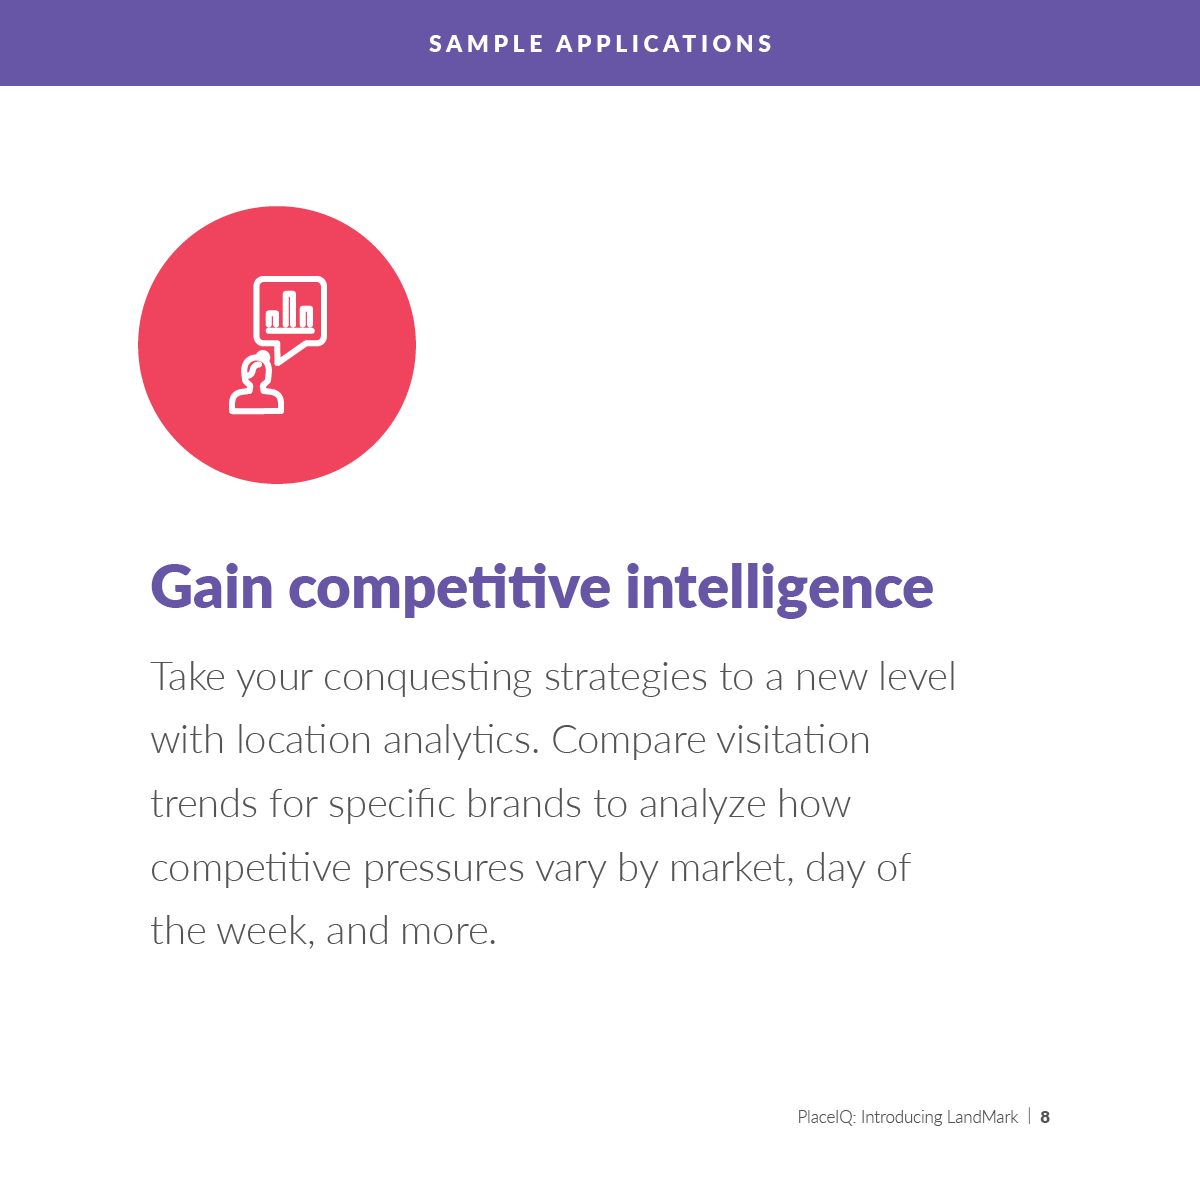 Gain competitive intelligence